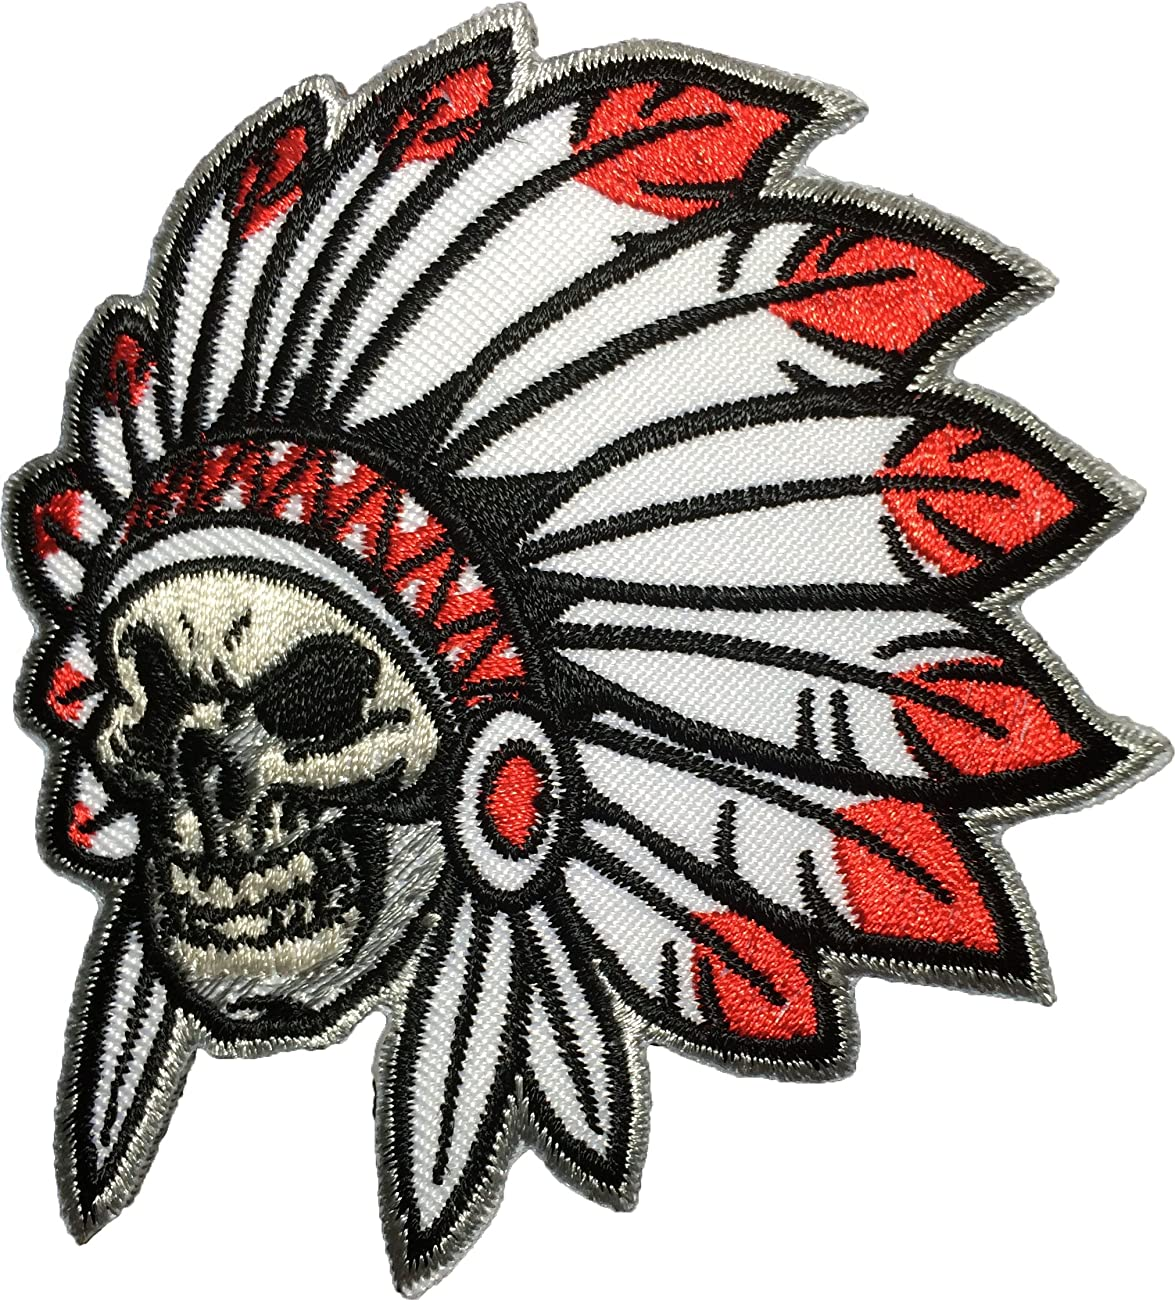 Native American Indian Chief Feather Skull Sew Iron on Patch (SKUL-HEAD-INDI-AN02) 0